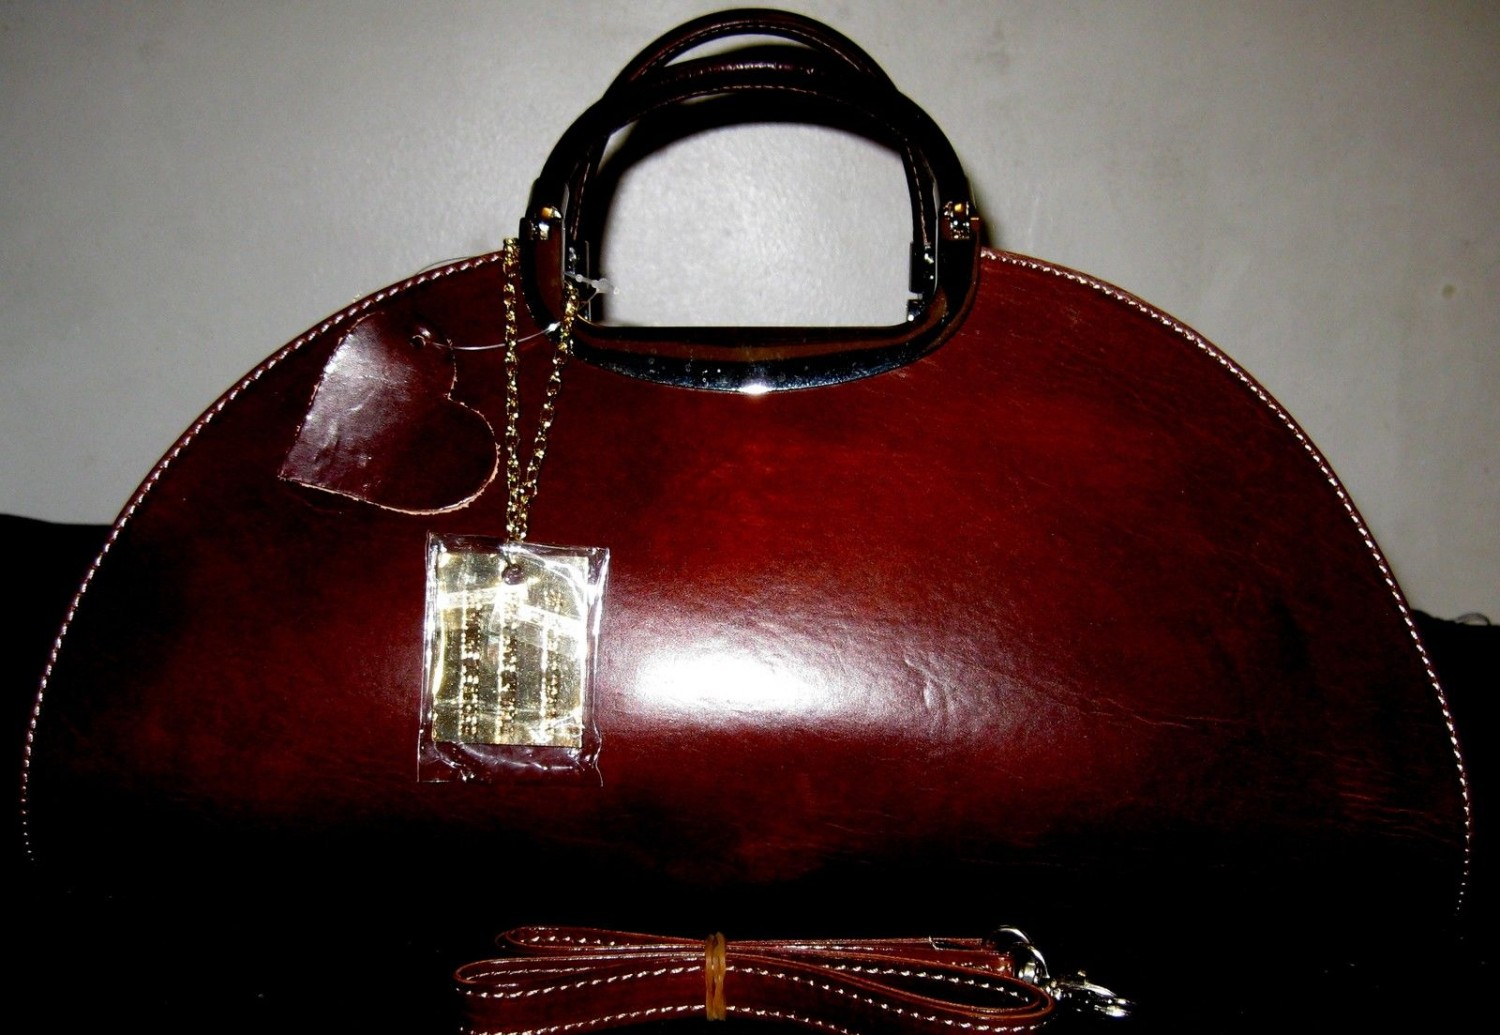 100% GENUINE ITALIAN COW LEATHER HANDBAG BELFAST CASTEL BROWN